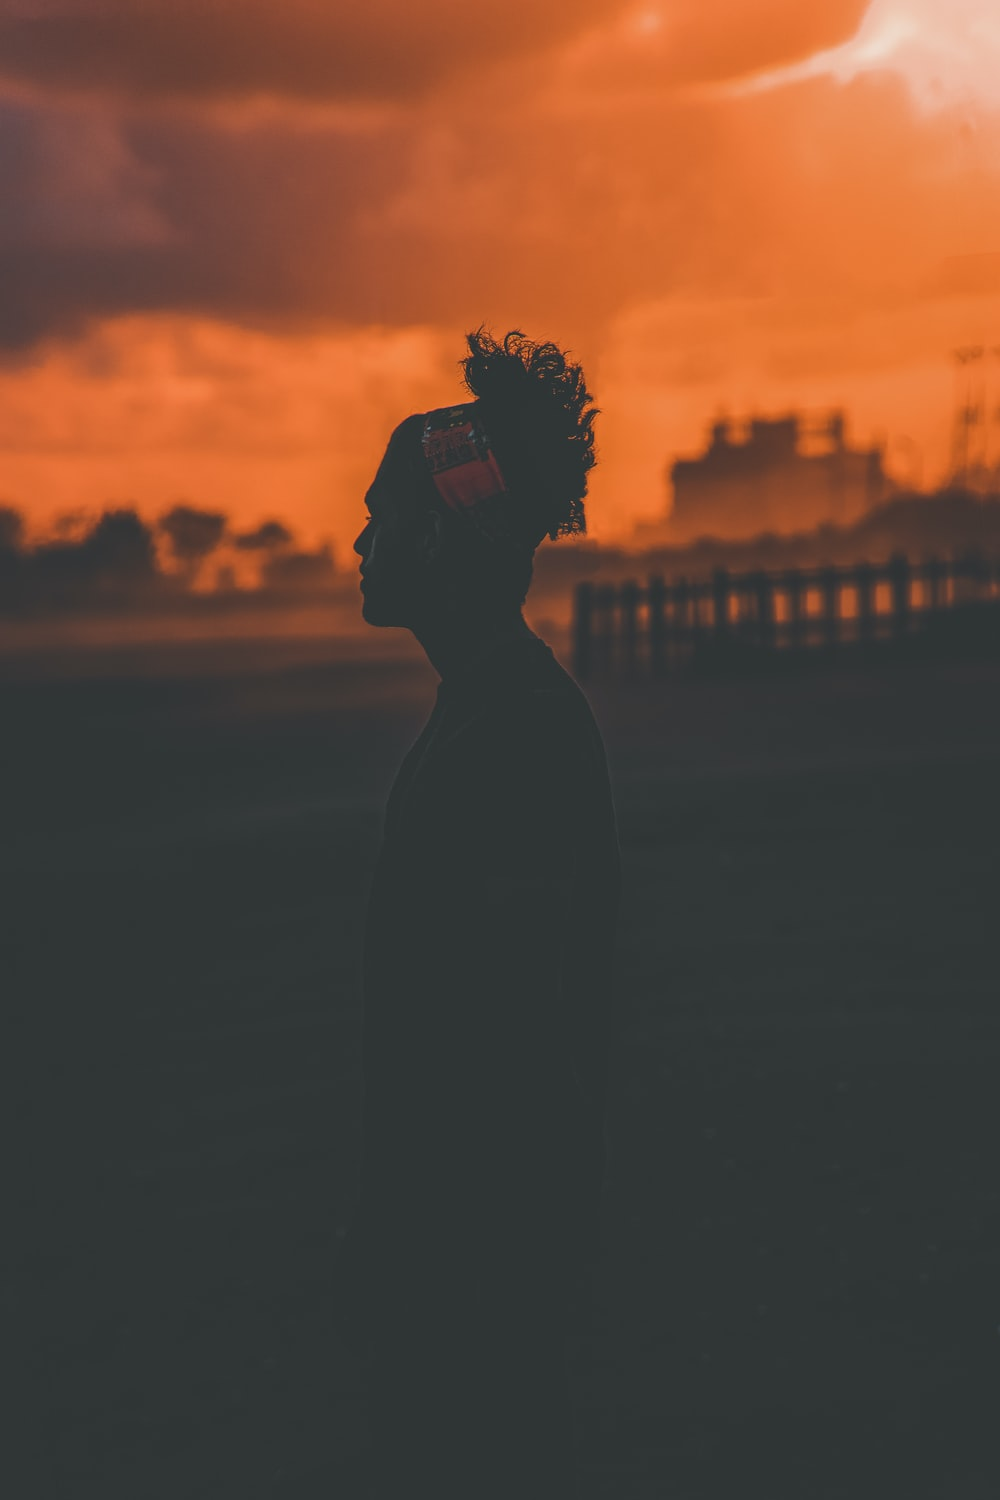 silhouette of standing person during golden hour